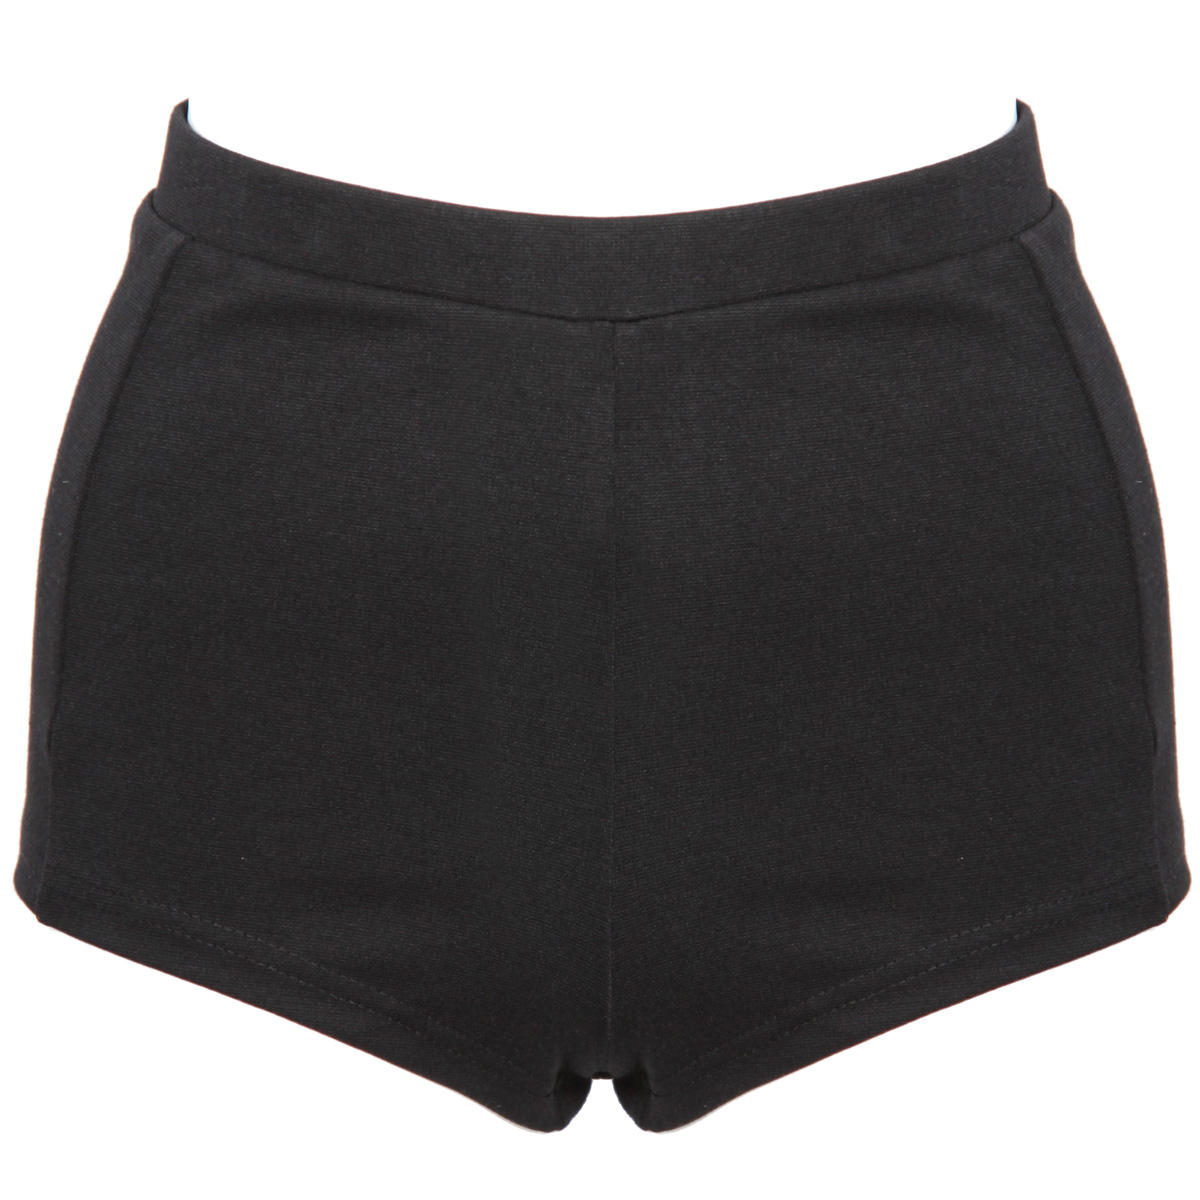 Black High Waisted Knicker Shorts Preview